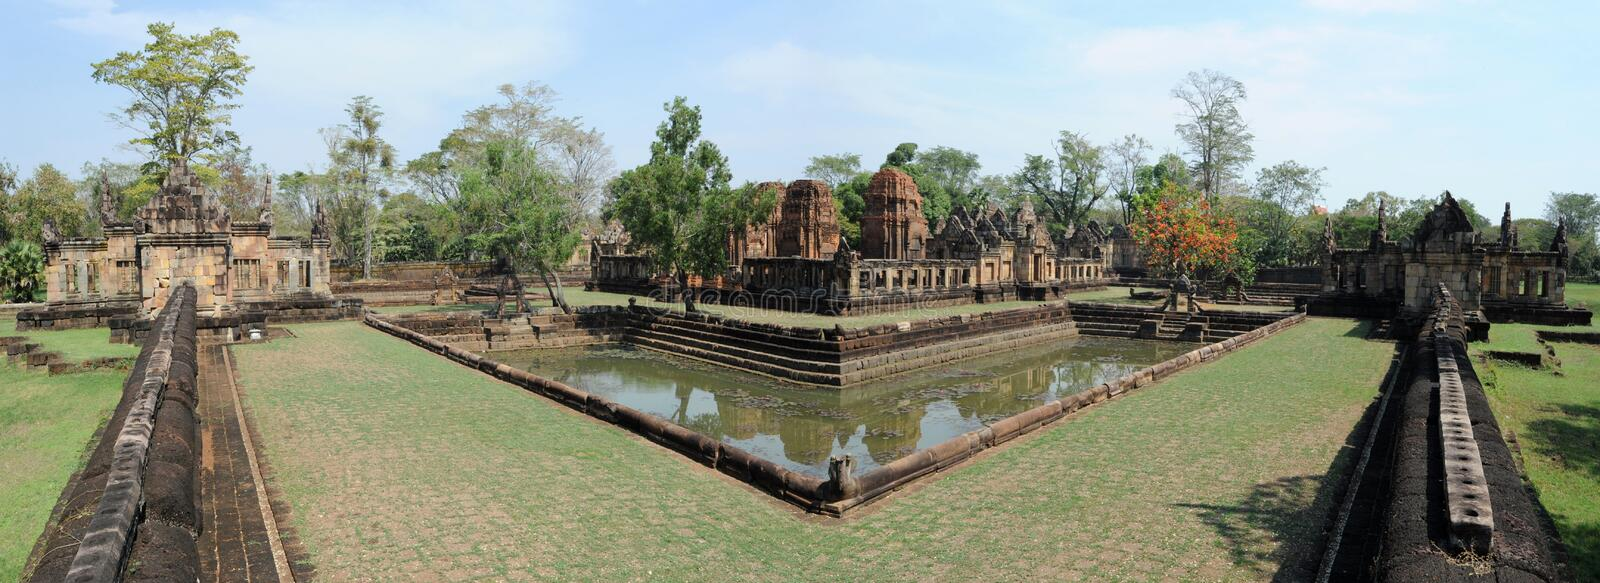 Download The Archaeological Site Of Prasat Muang Tam Stock Image - Image: 29869519